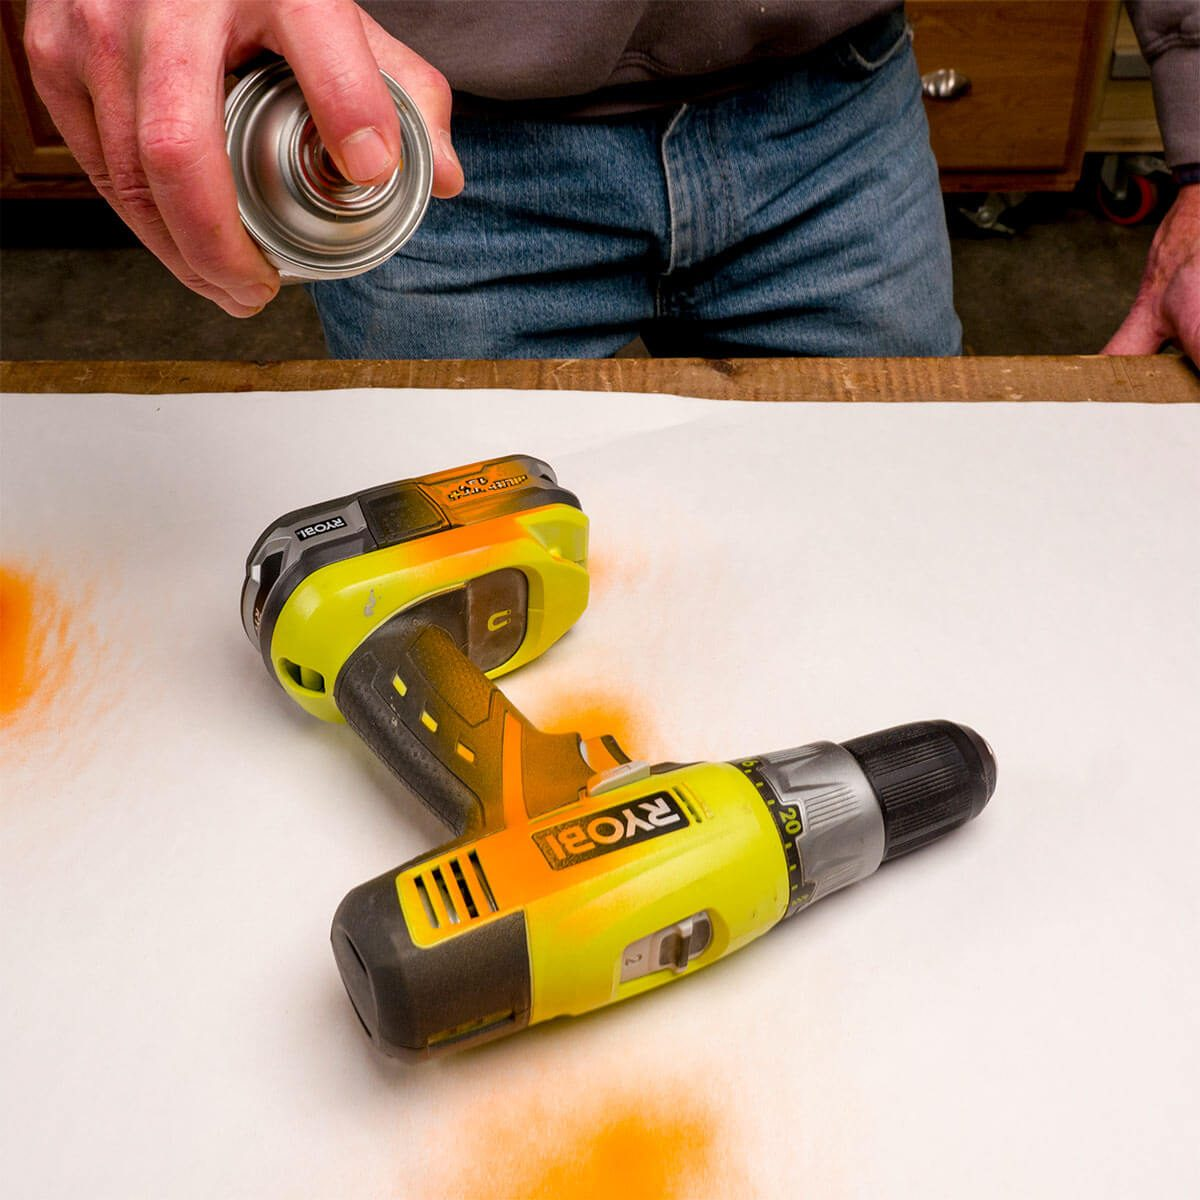 tag tools with spray paint